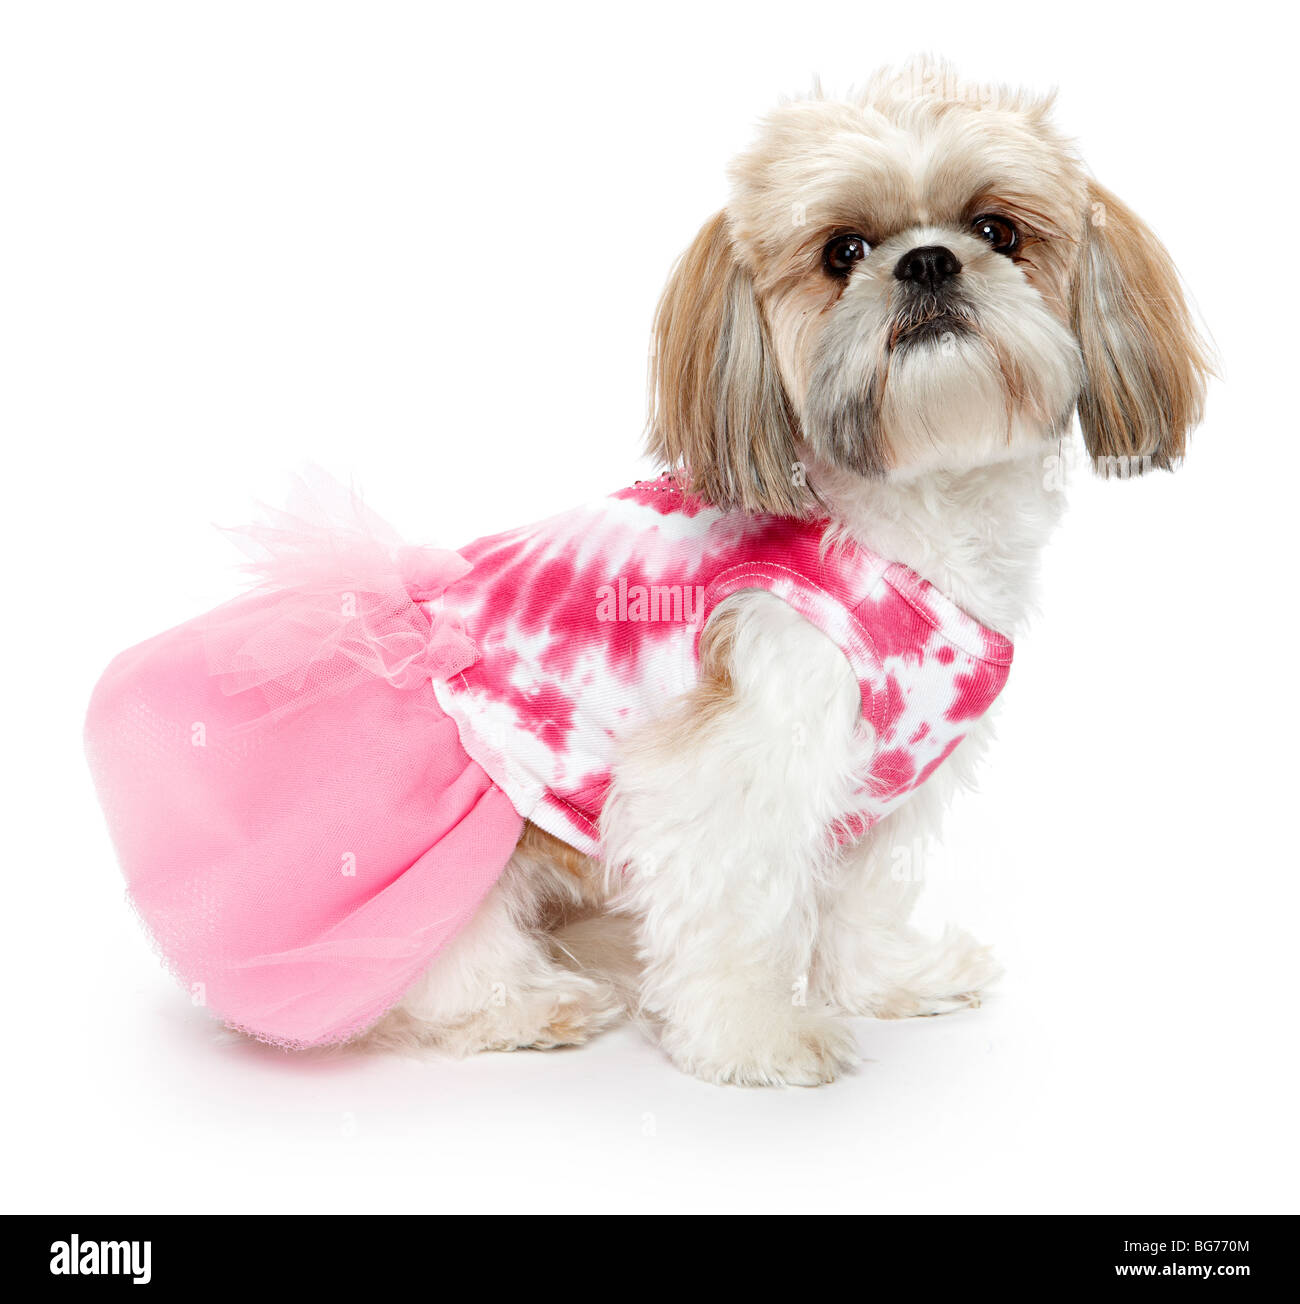 Shitsu Shih tzu dog in Pink outfit clothes - Stock Image